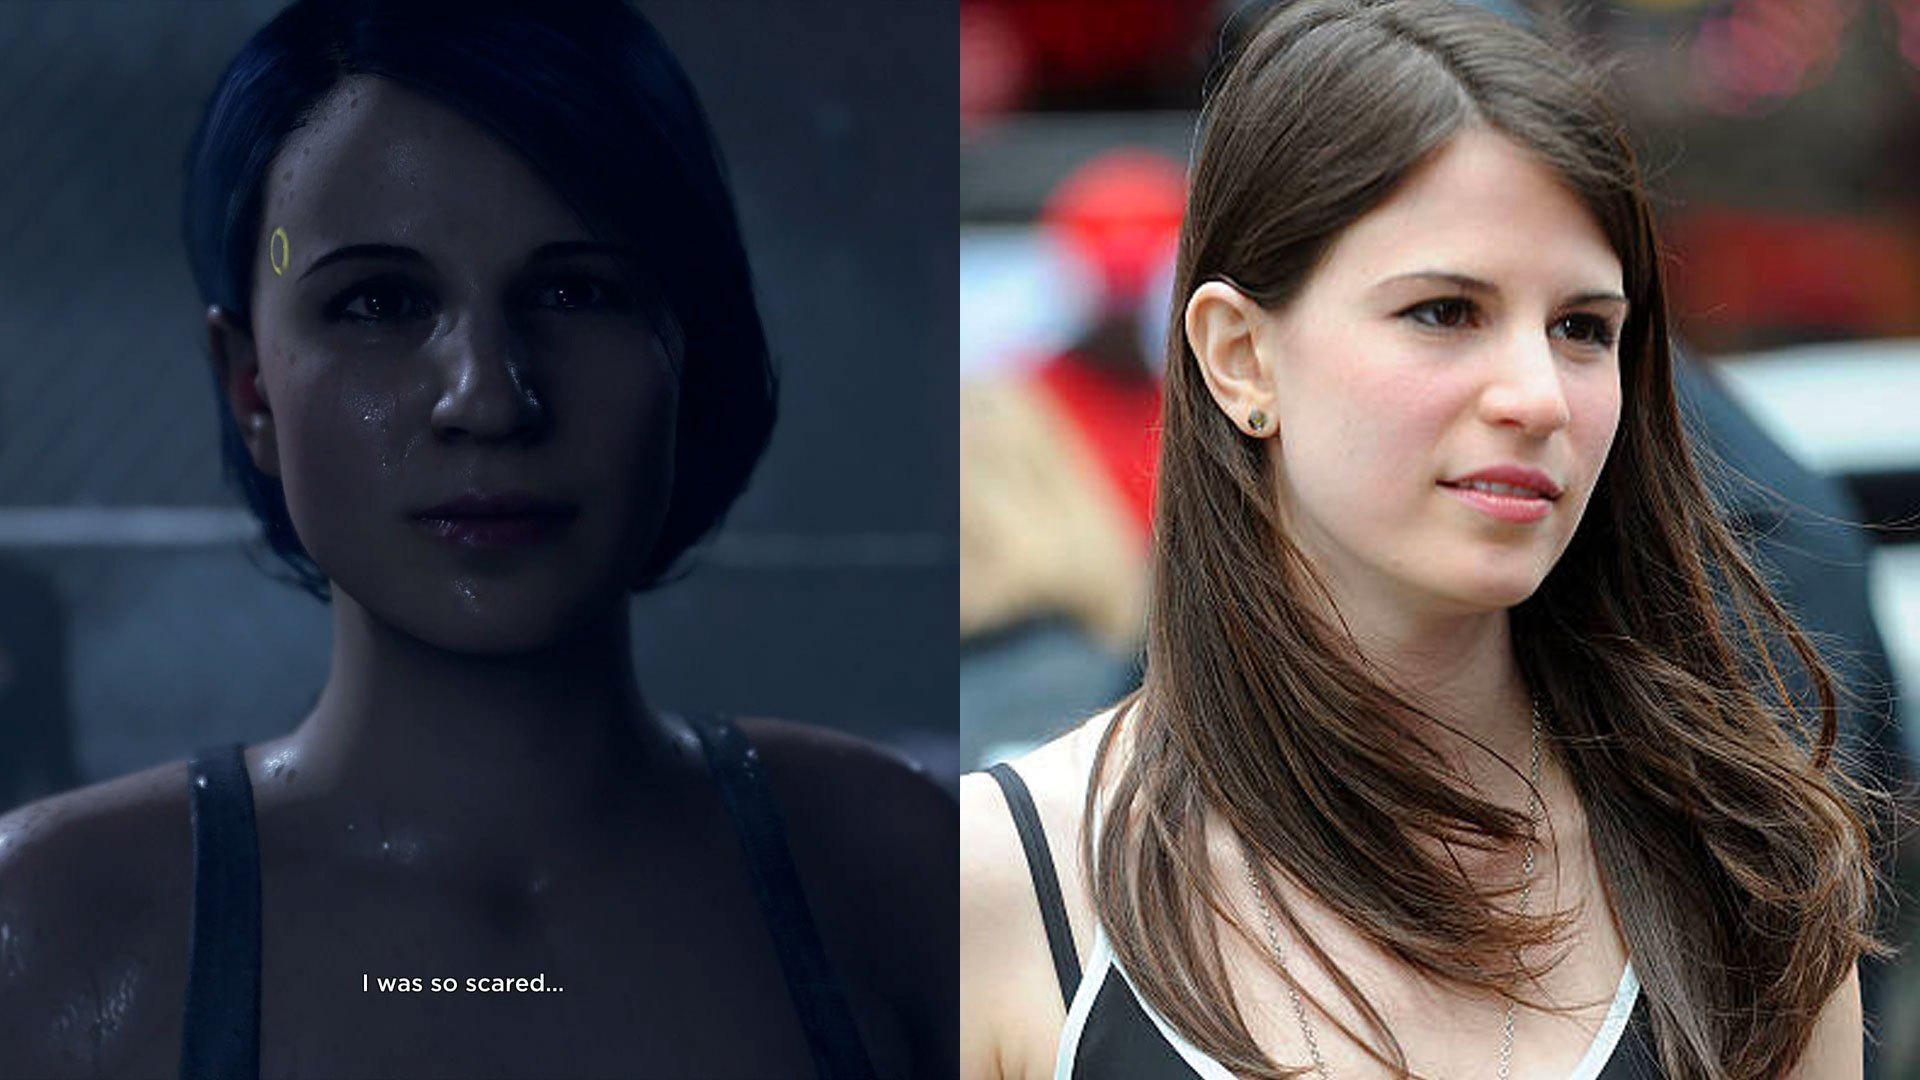 amelia-rose-blaire-traci-detroit-become-human